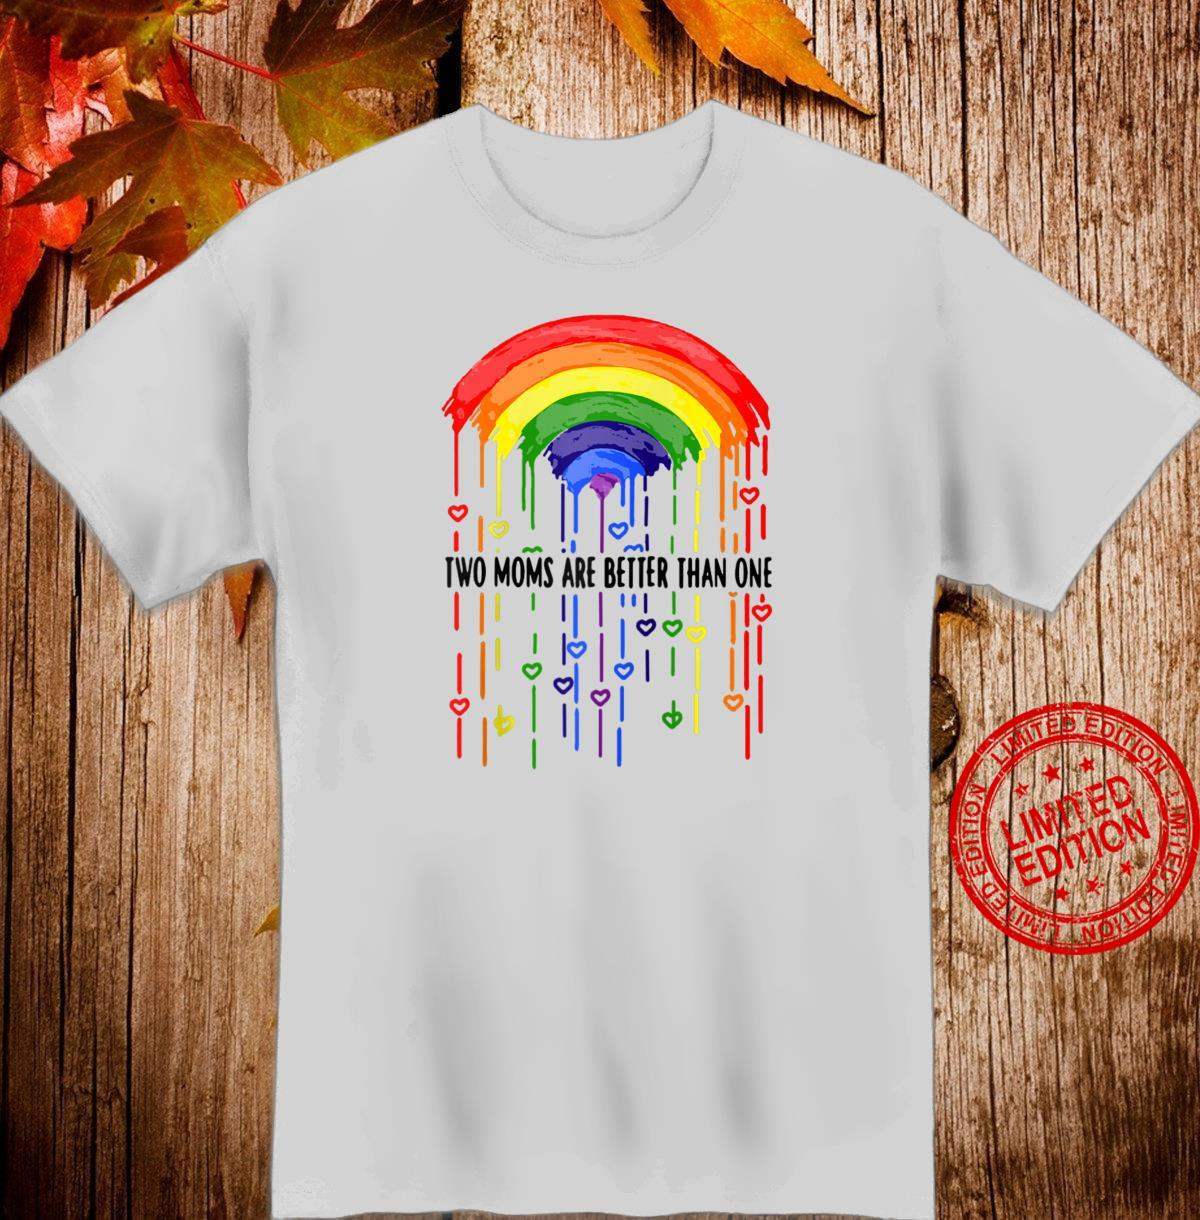 LGBT Two Moms Are Better Than One, Mom Shirt